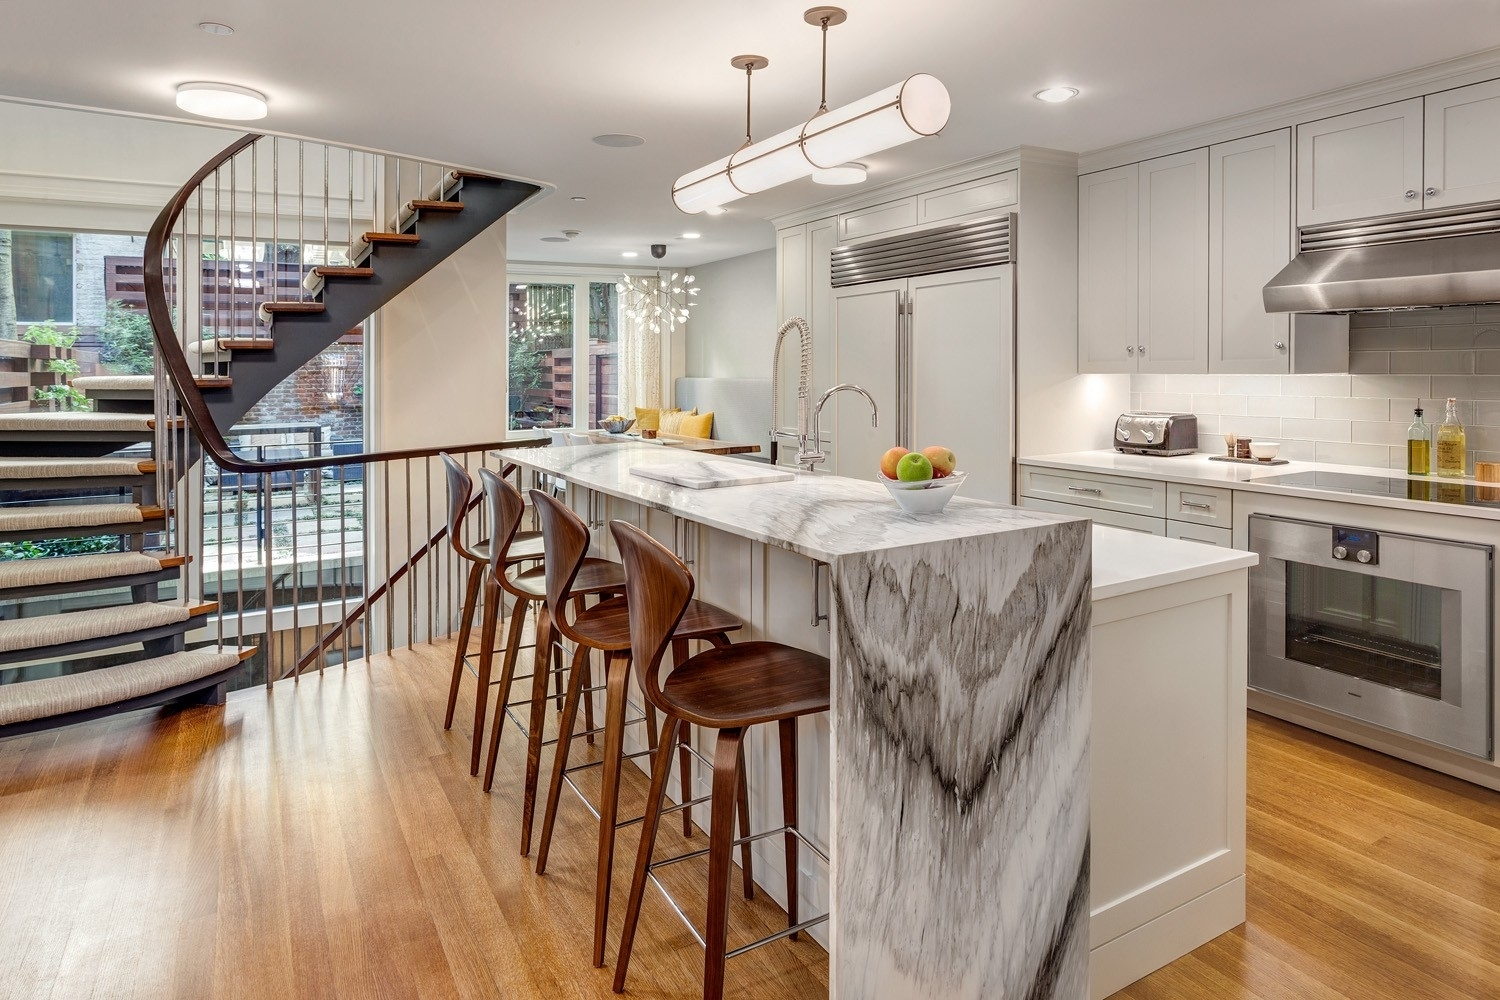 8. Single Family Townhouse for Sale at Upper West Side, New York, NY 10024